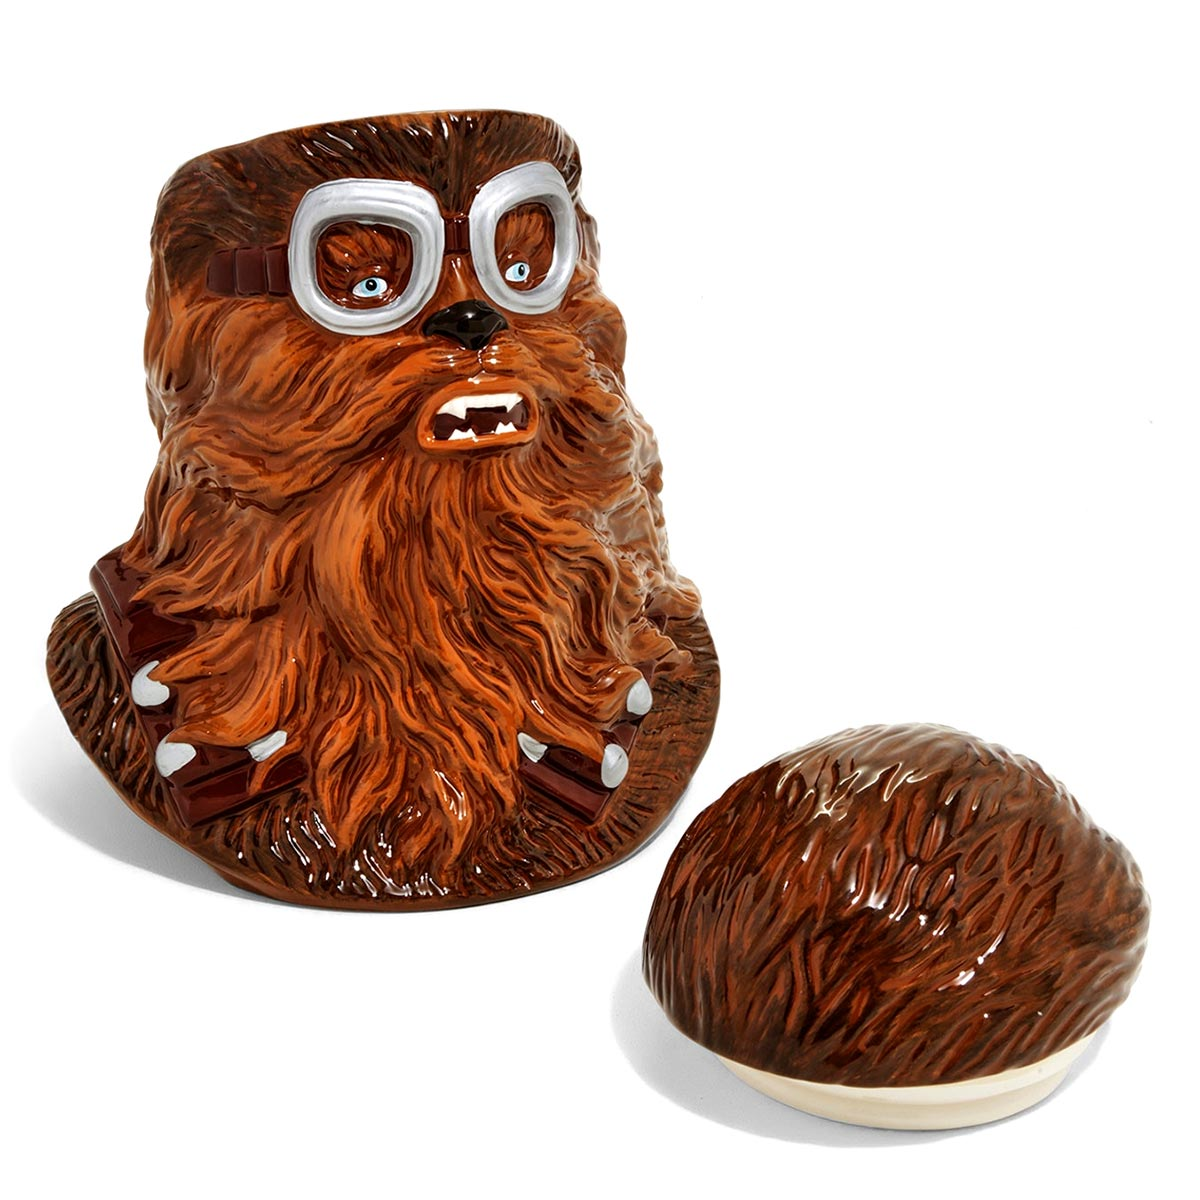 Star Wars Cookie Jars Star Wars Solo Chewbacca Cookie Jar